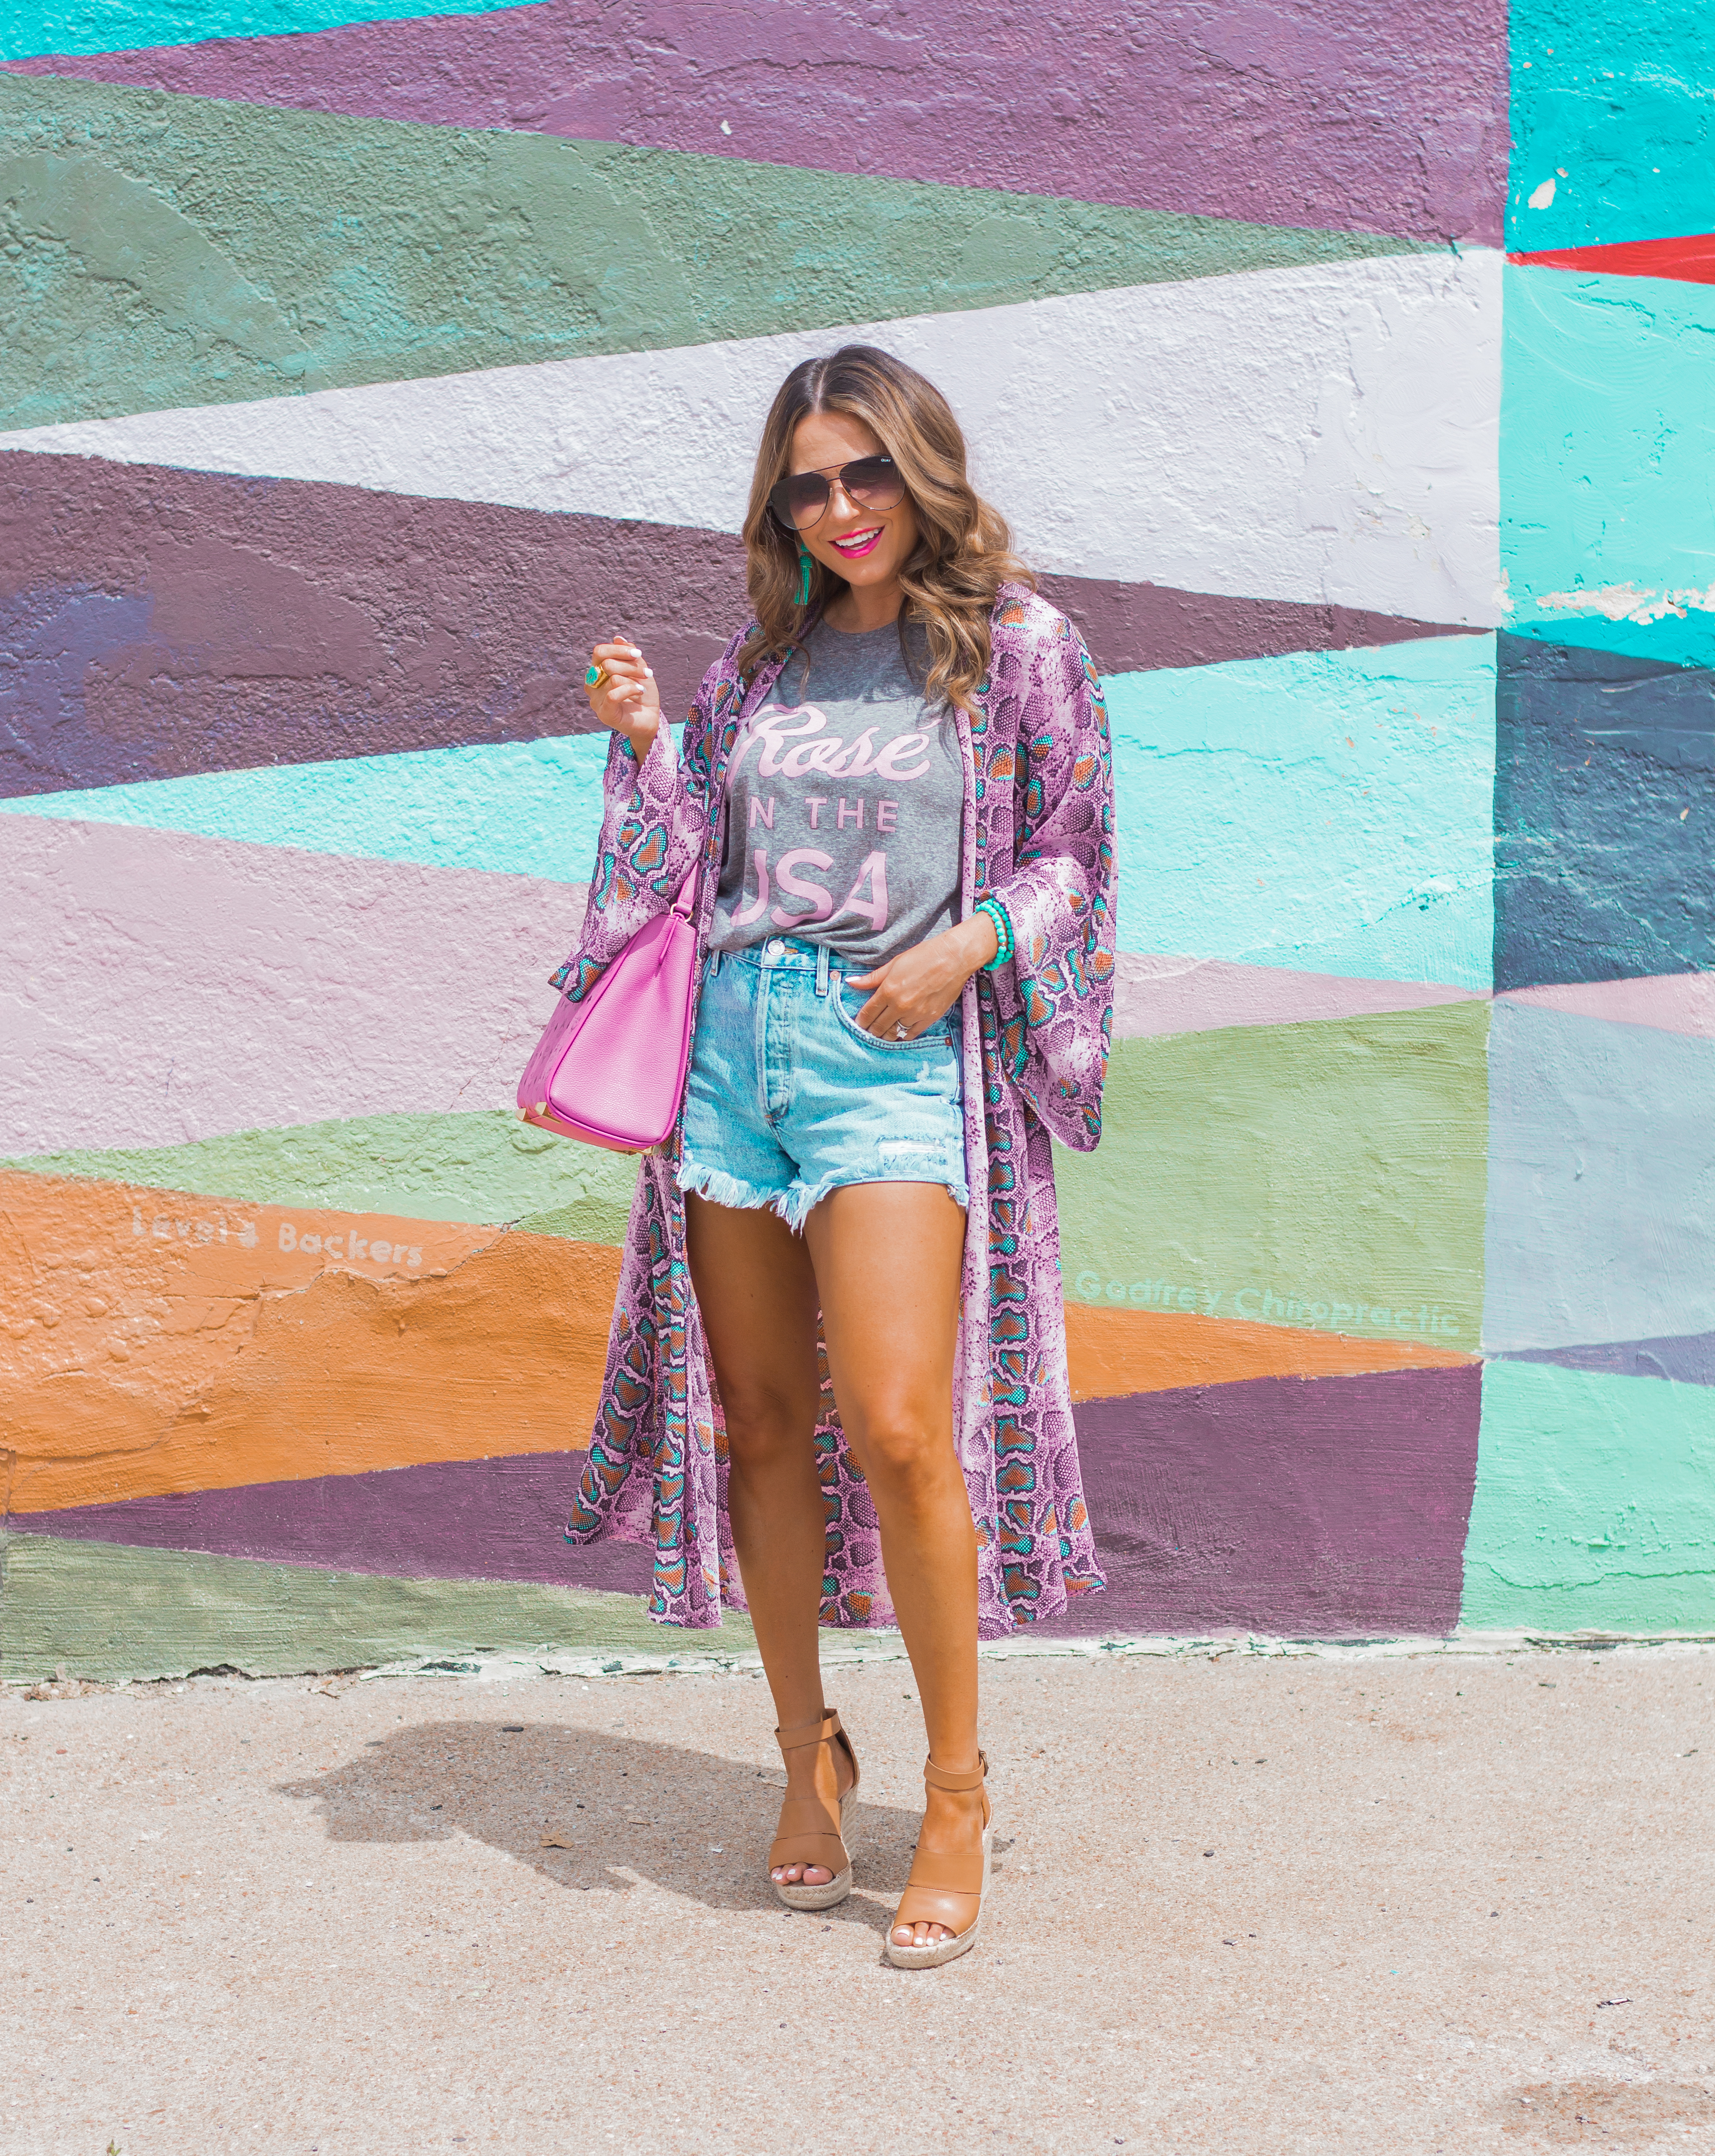 Rosé in the USA-Buddy Love-Kimono-Sugar Boutique-Women's Fashion-Summer Outfit-4th of July-Espadrille Wedges-MCM Bag-Pink Bag-Omaha Blogger-Sabby Style-Agolde Jean Shorts-Turquoise Jewelry-Quay Sunglasses-Colorful Style-Omaha-Nebraska-BaubleBar Earrings-15